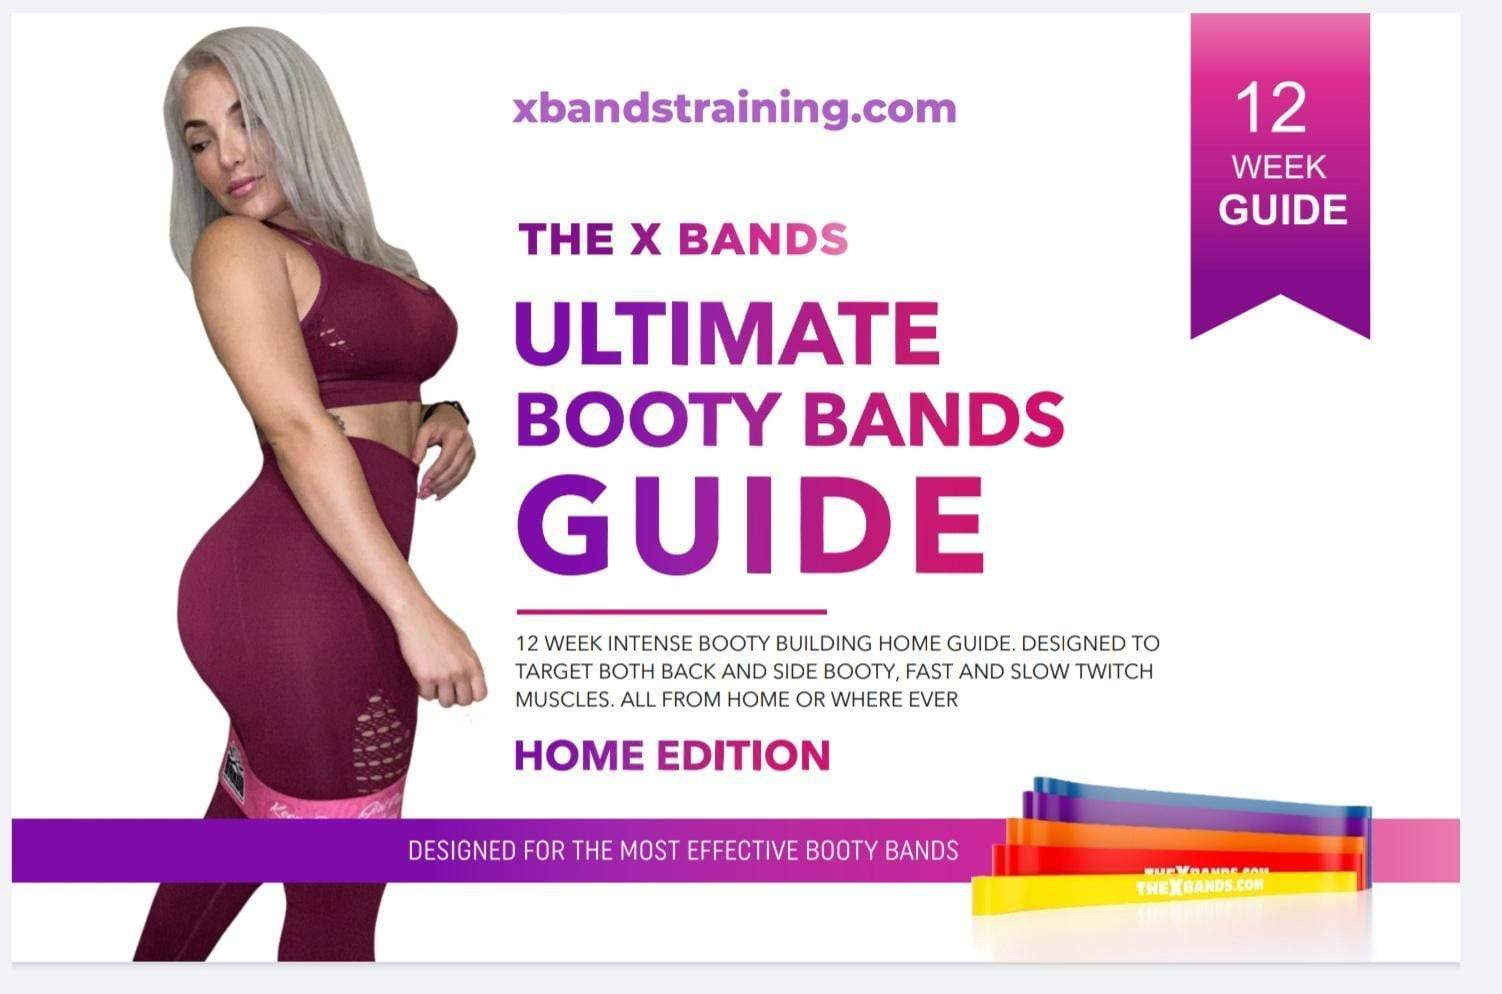 12 week Booty Building guide book - The X Bands